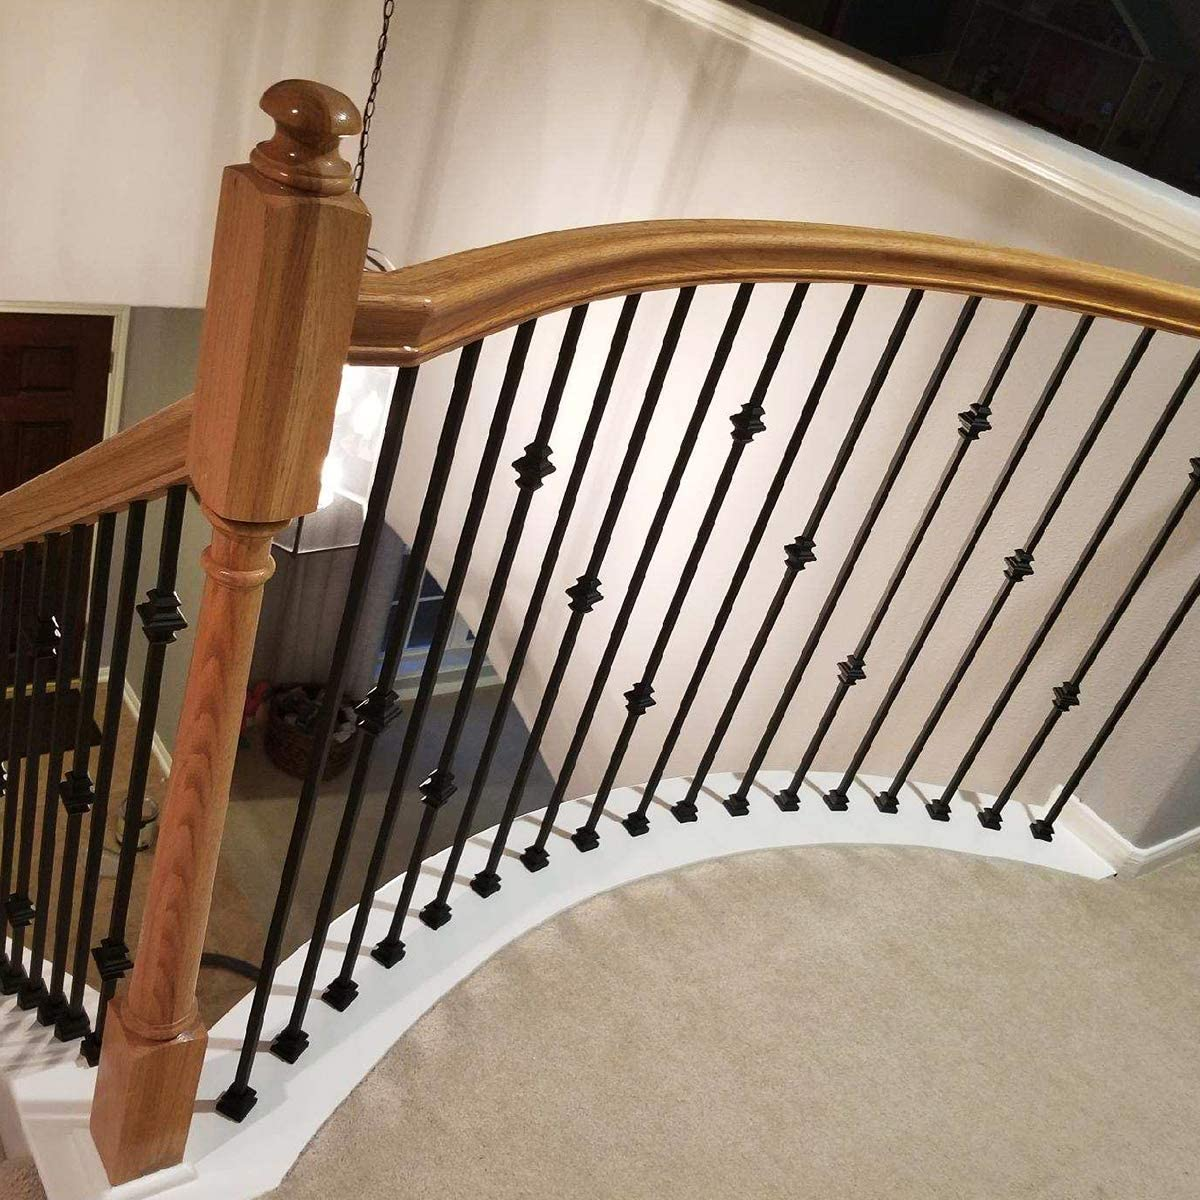 Stair Parts Baluster Metal Rail Mount FAST DELIVERY Wrought Railing Iron 1